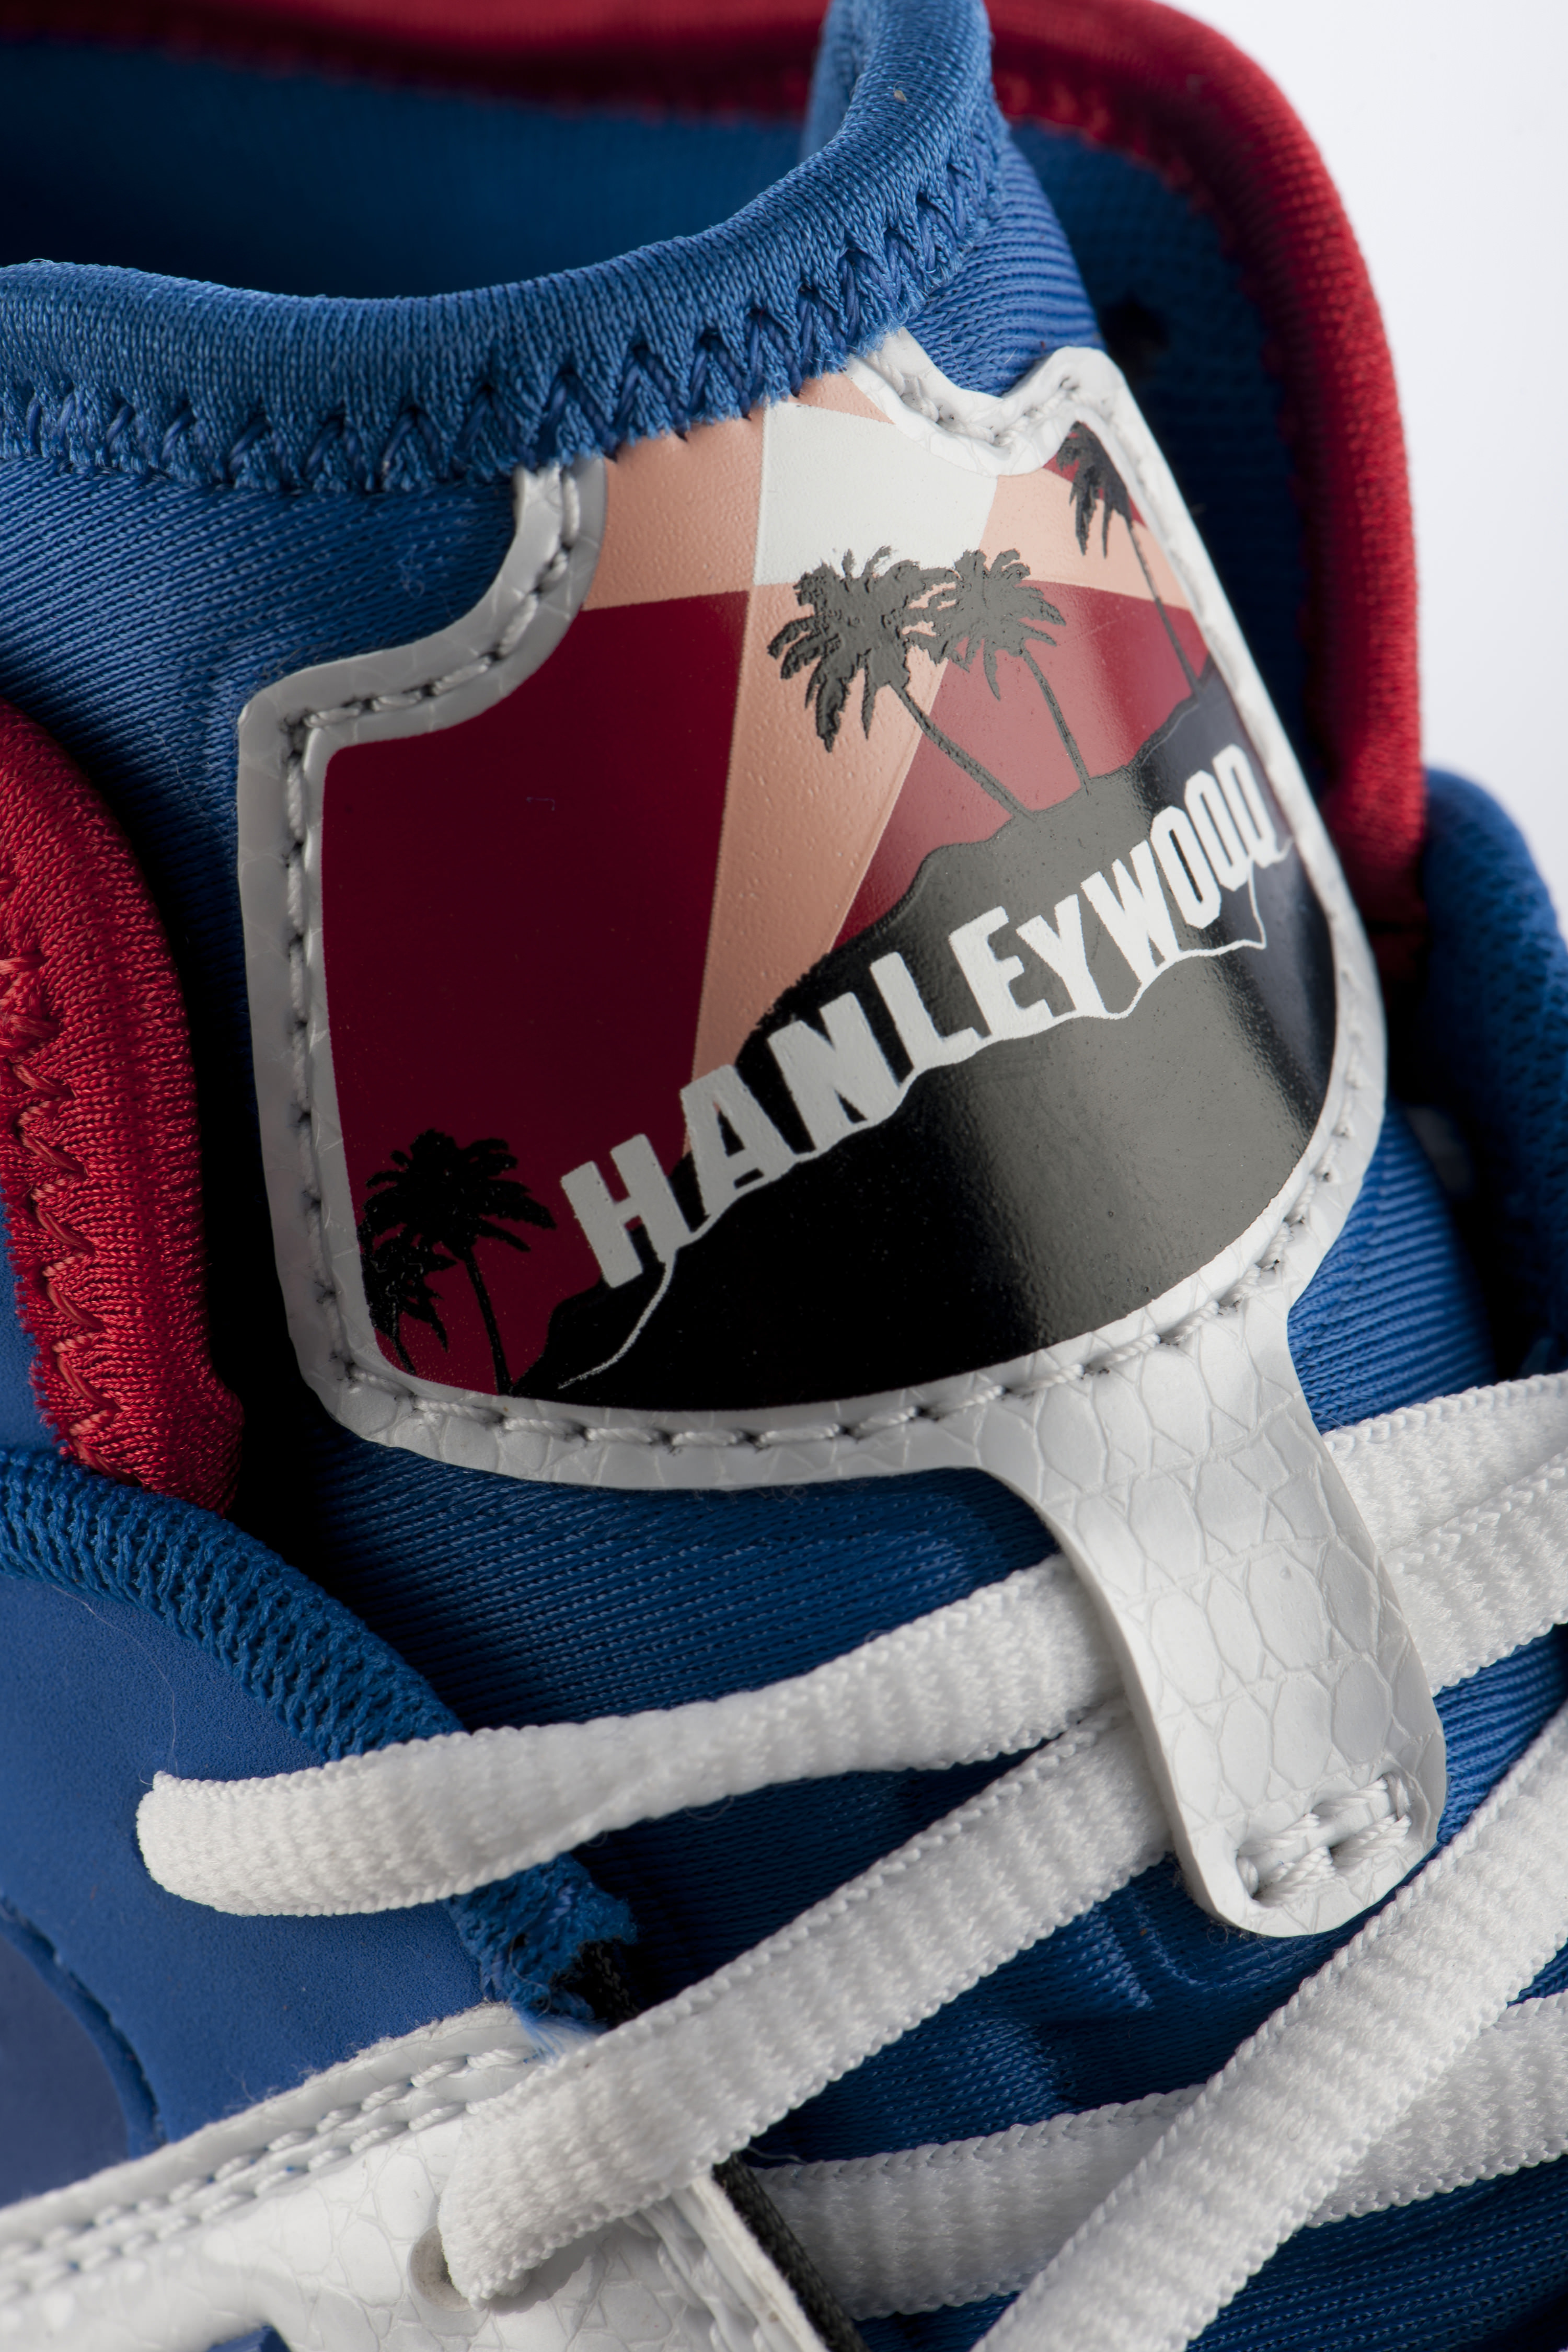 hanley-cleats-8